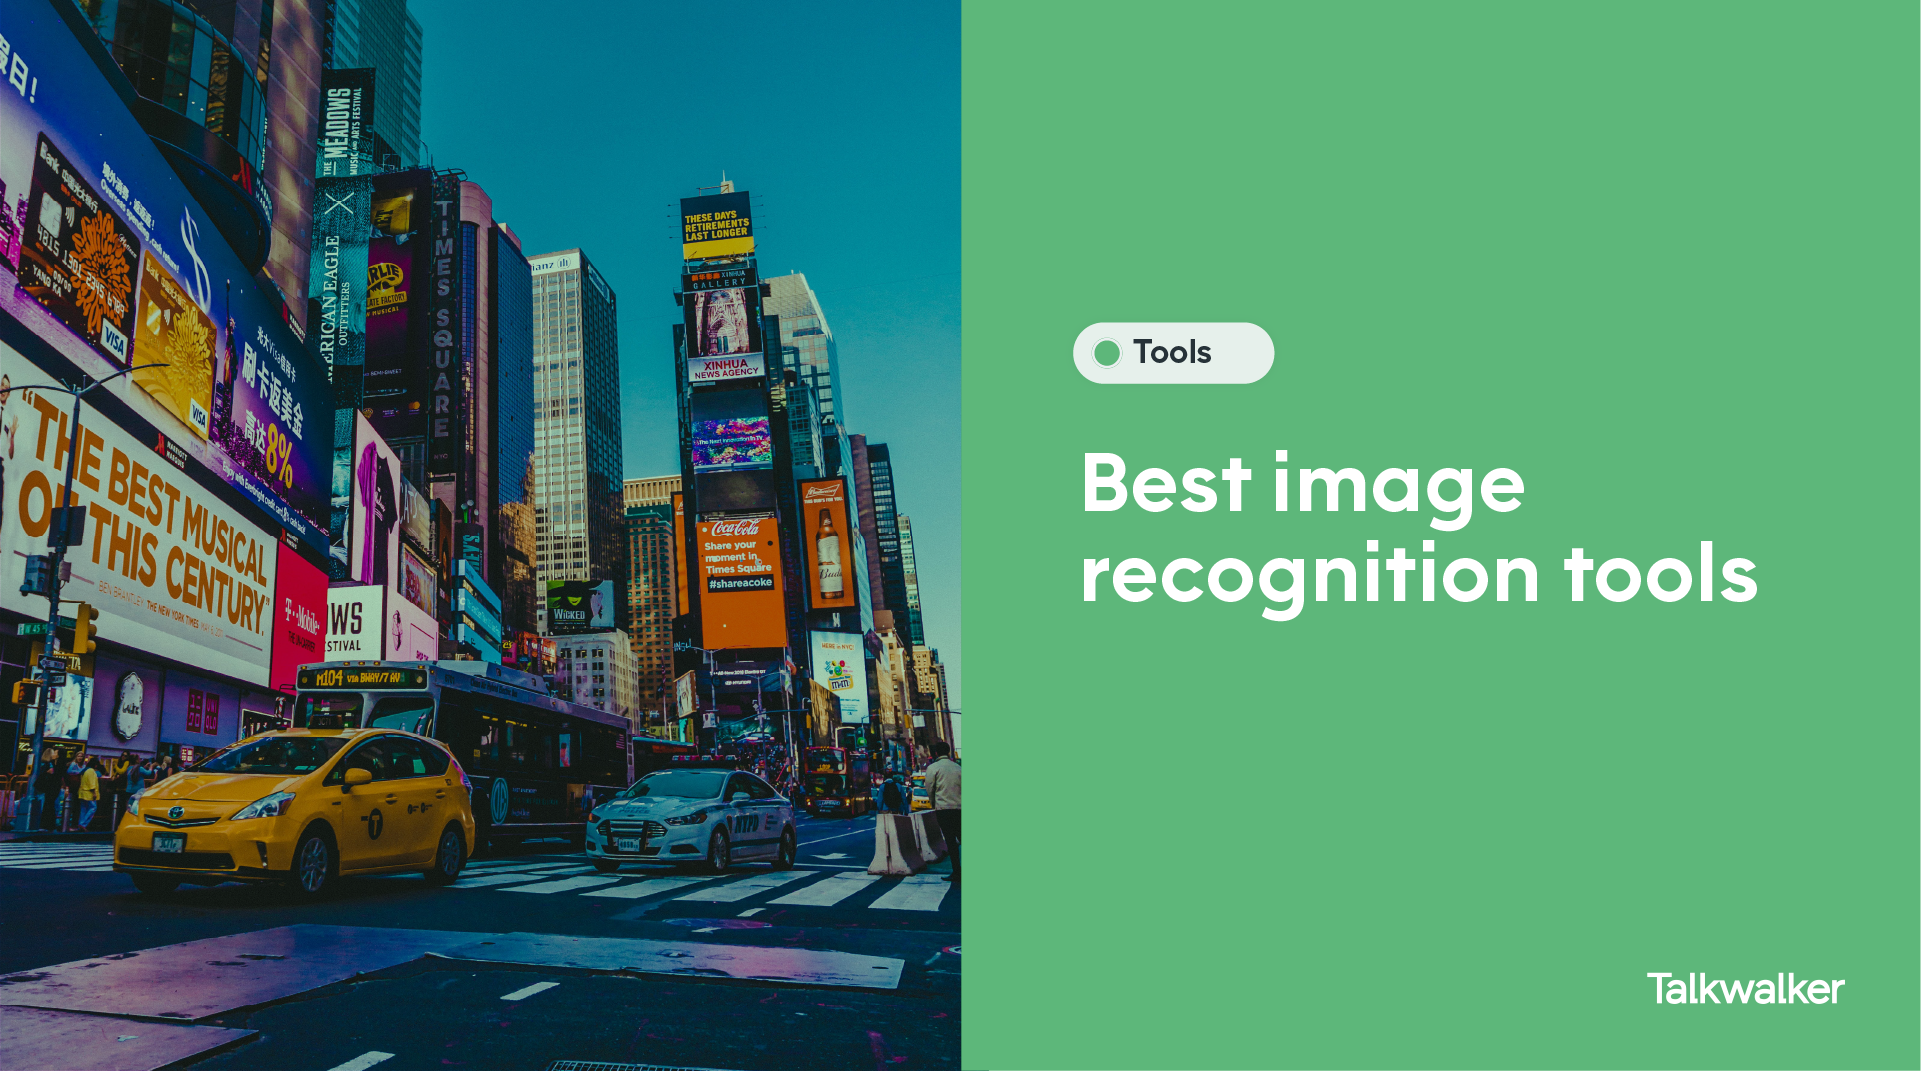 Best image recognition tools